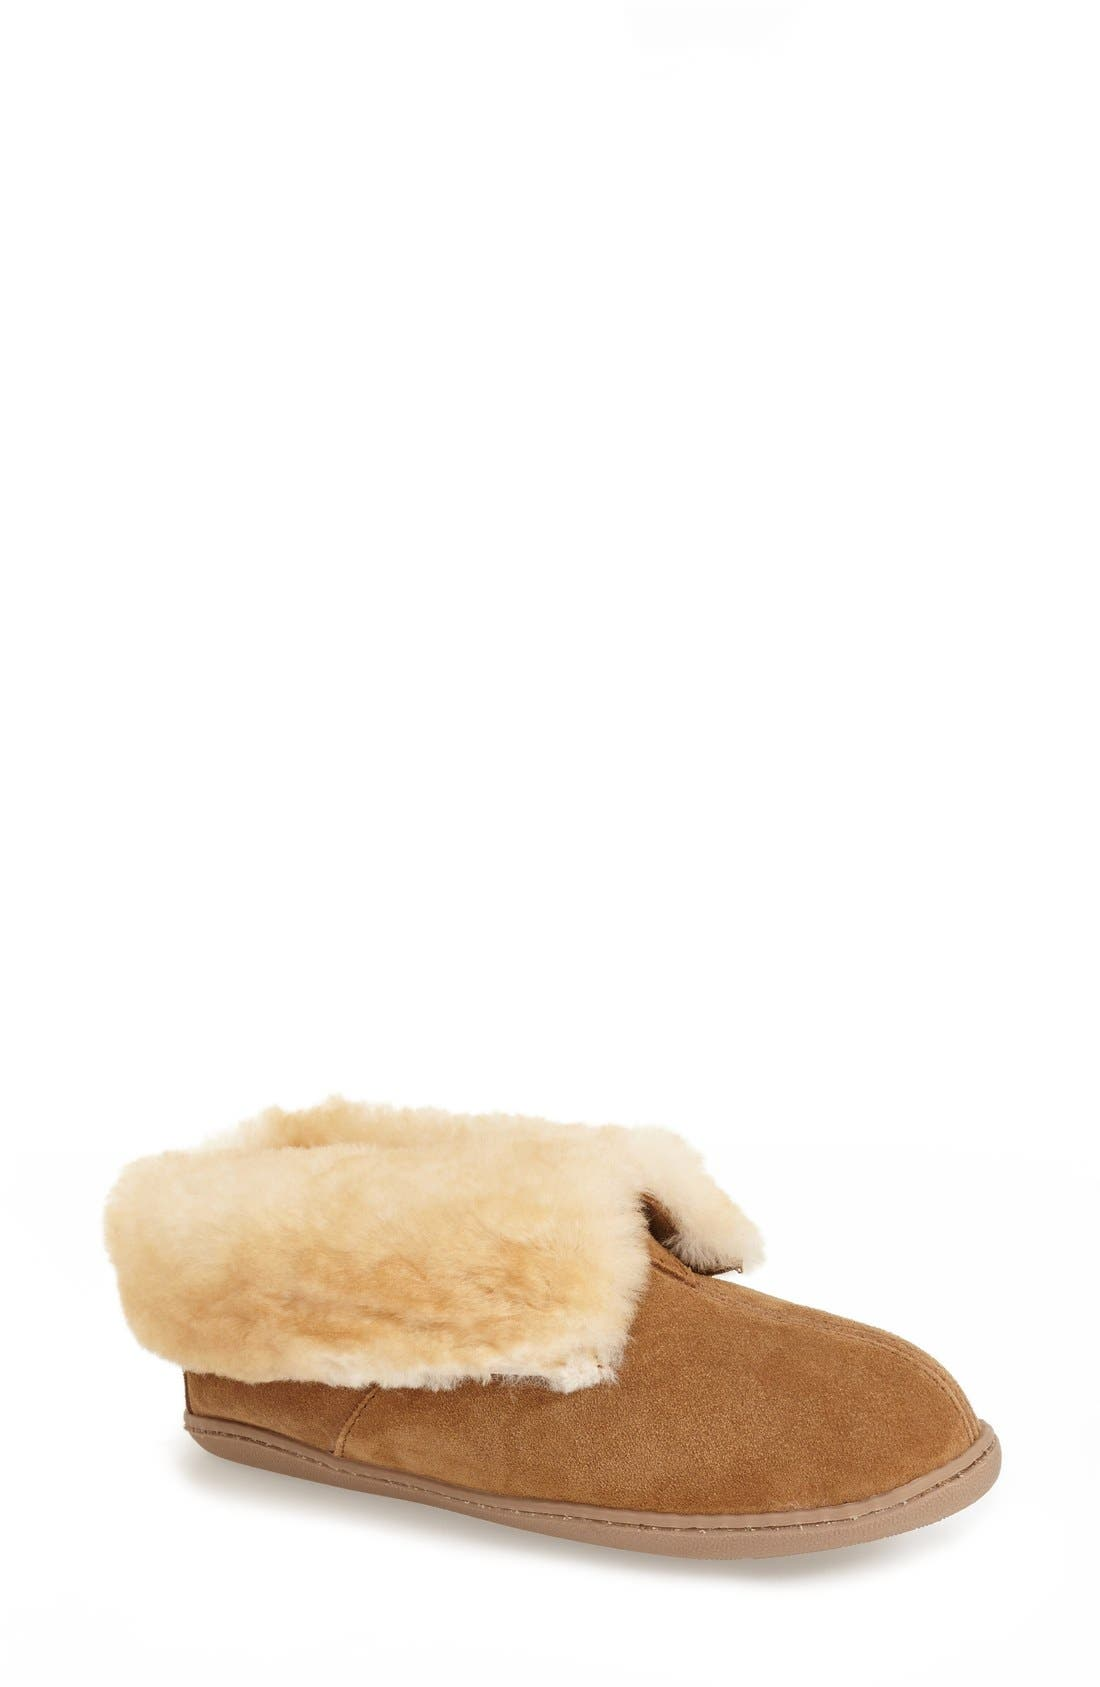 MINNETONKA Sheepskin Slipper Bootie, Main, color, TAN SUEDE